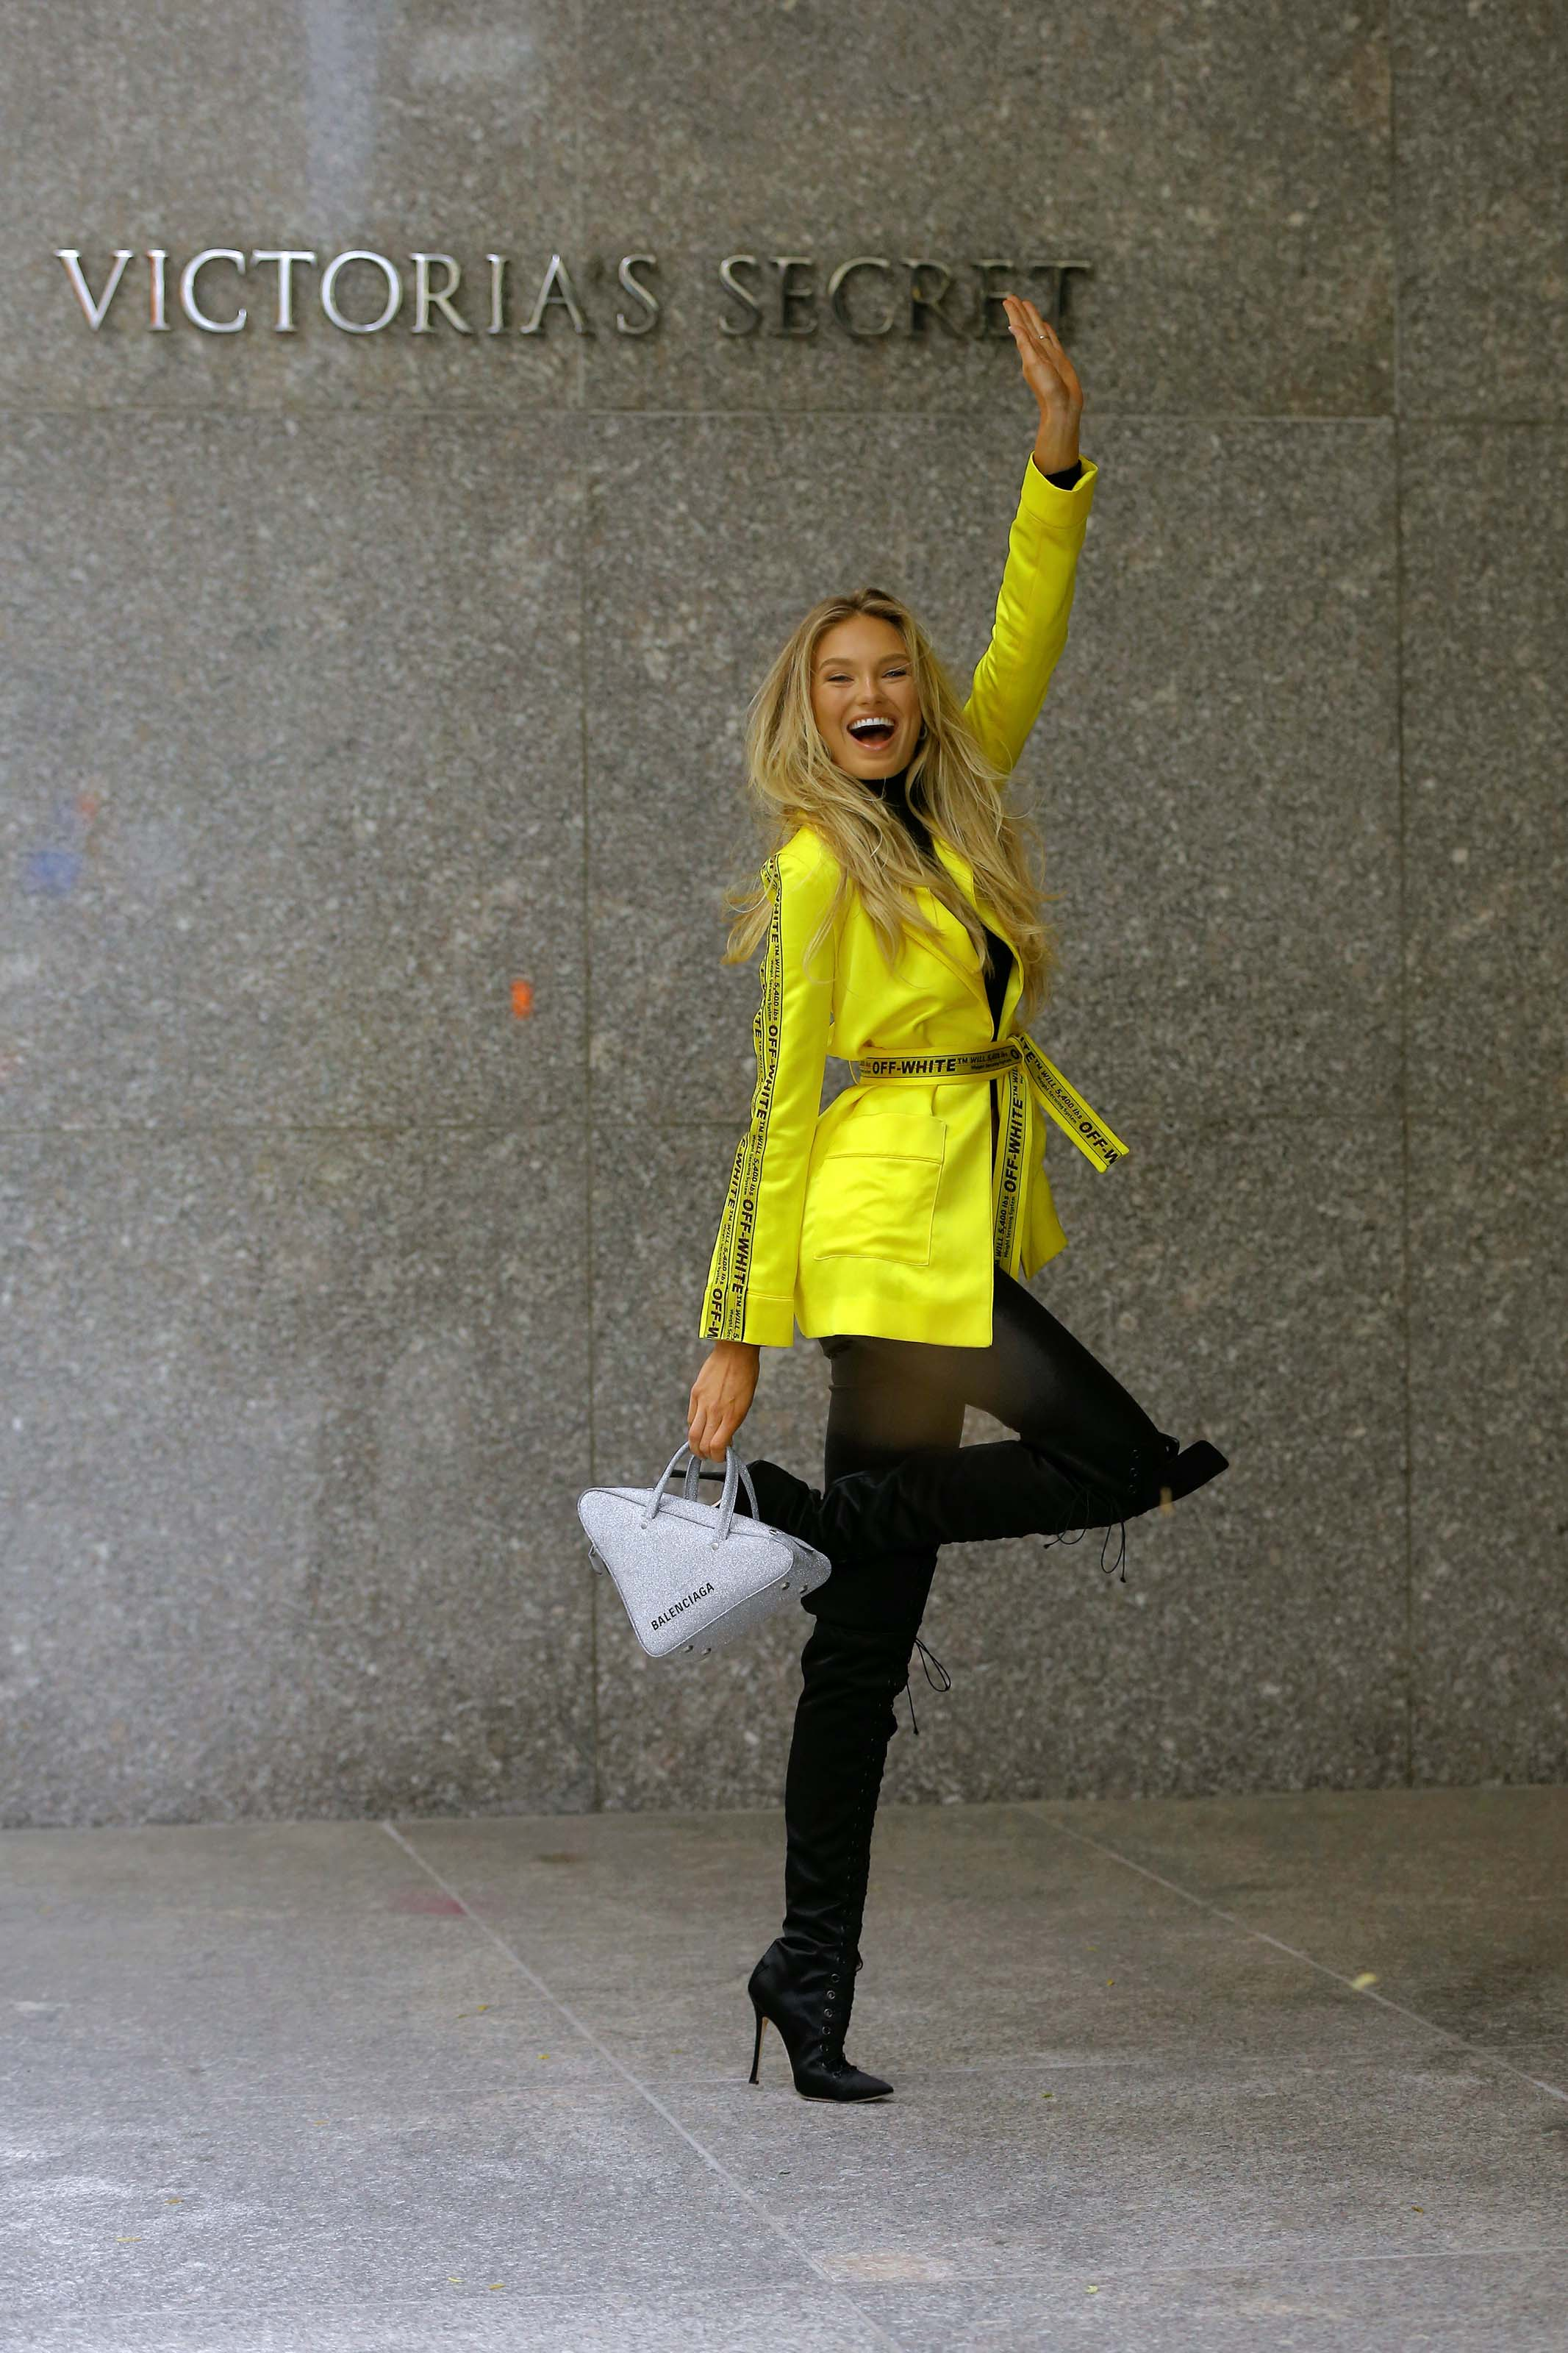 Romee Strijd attends A Fitting For The Victoria's Secret Fashion Show